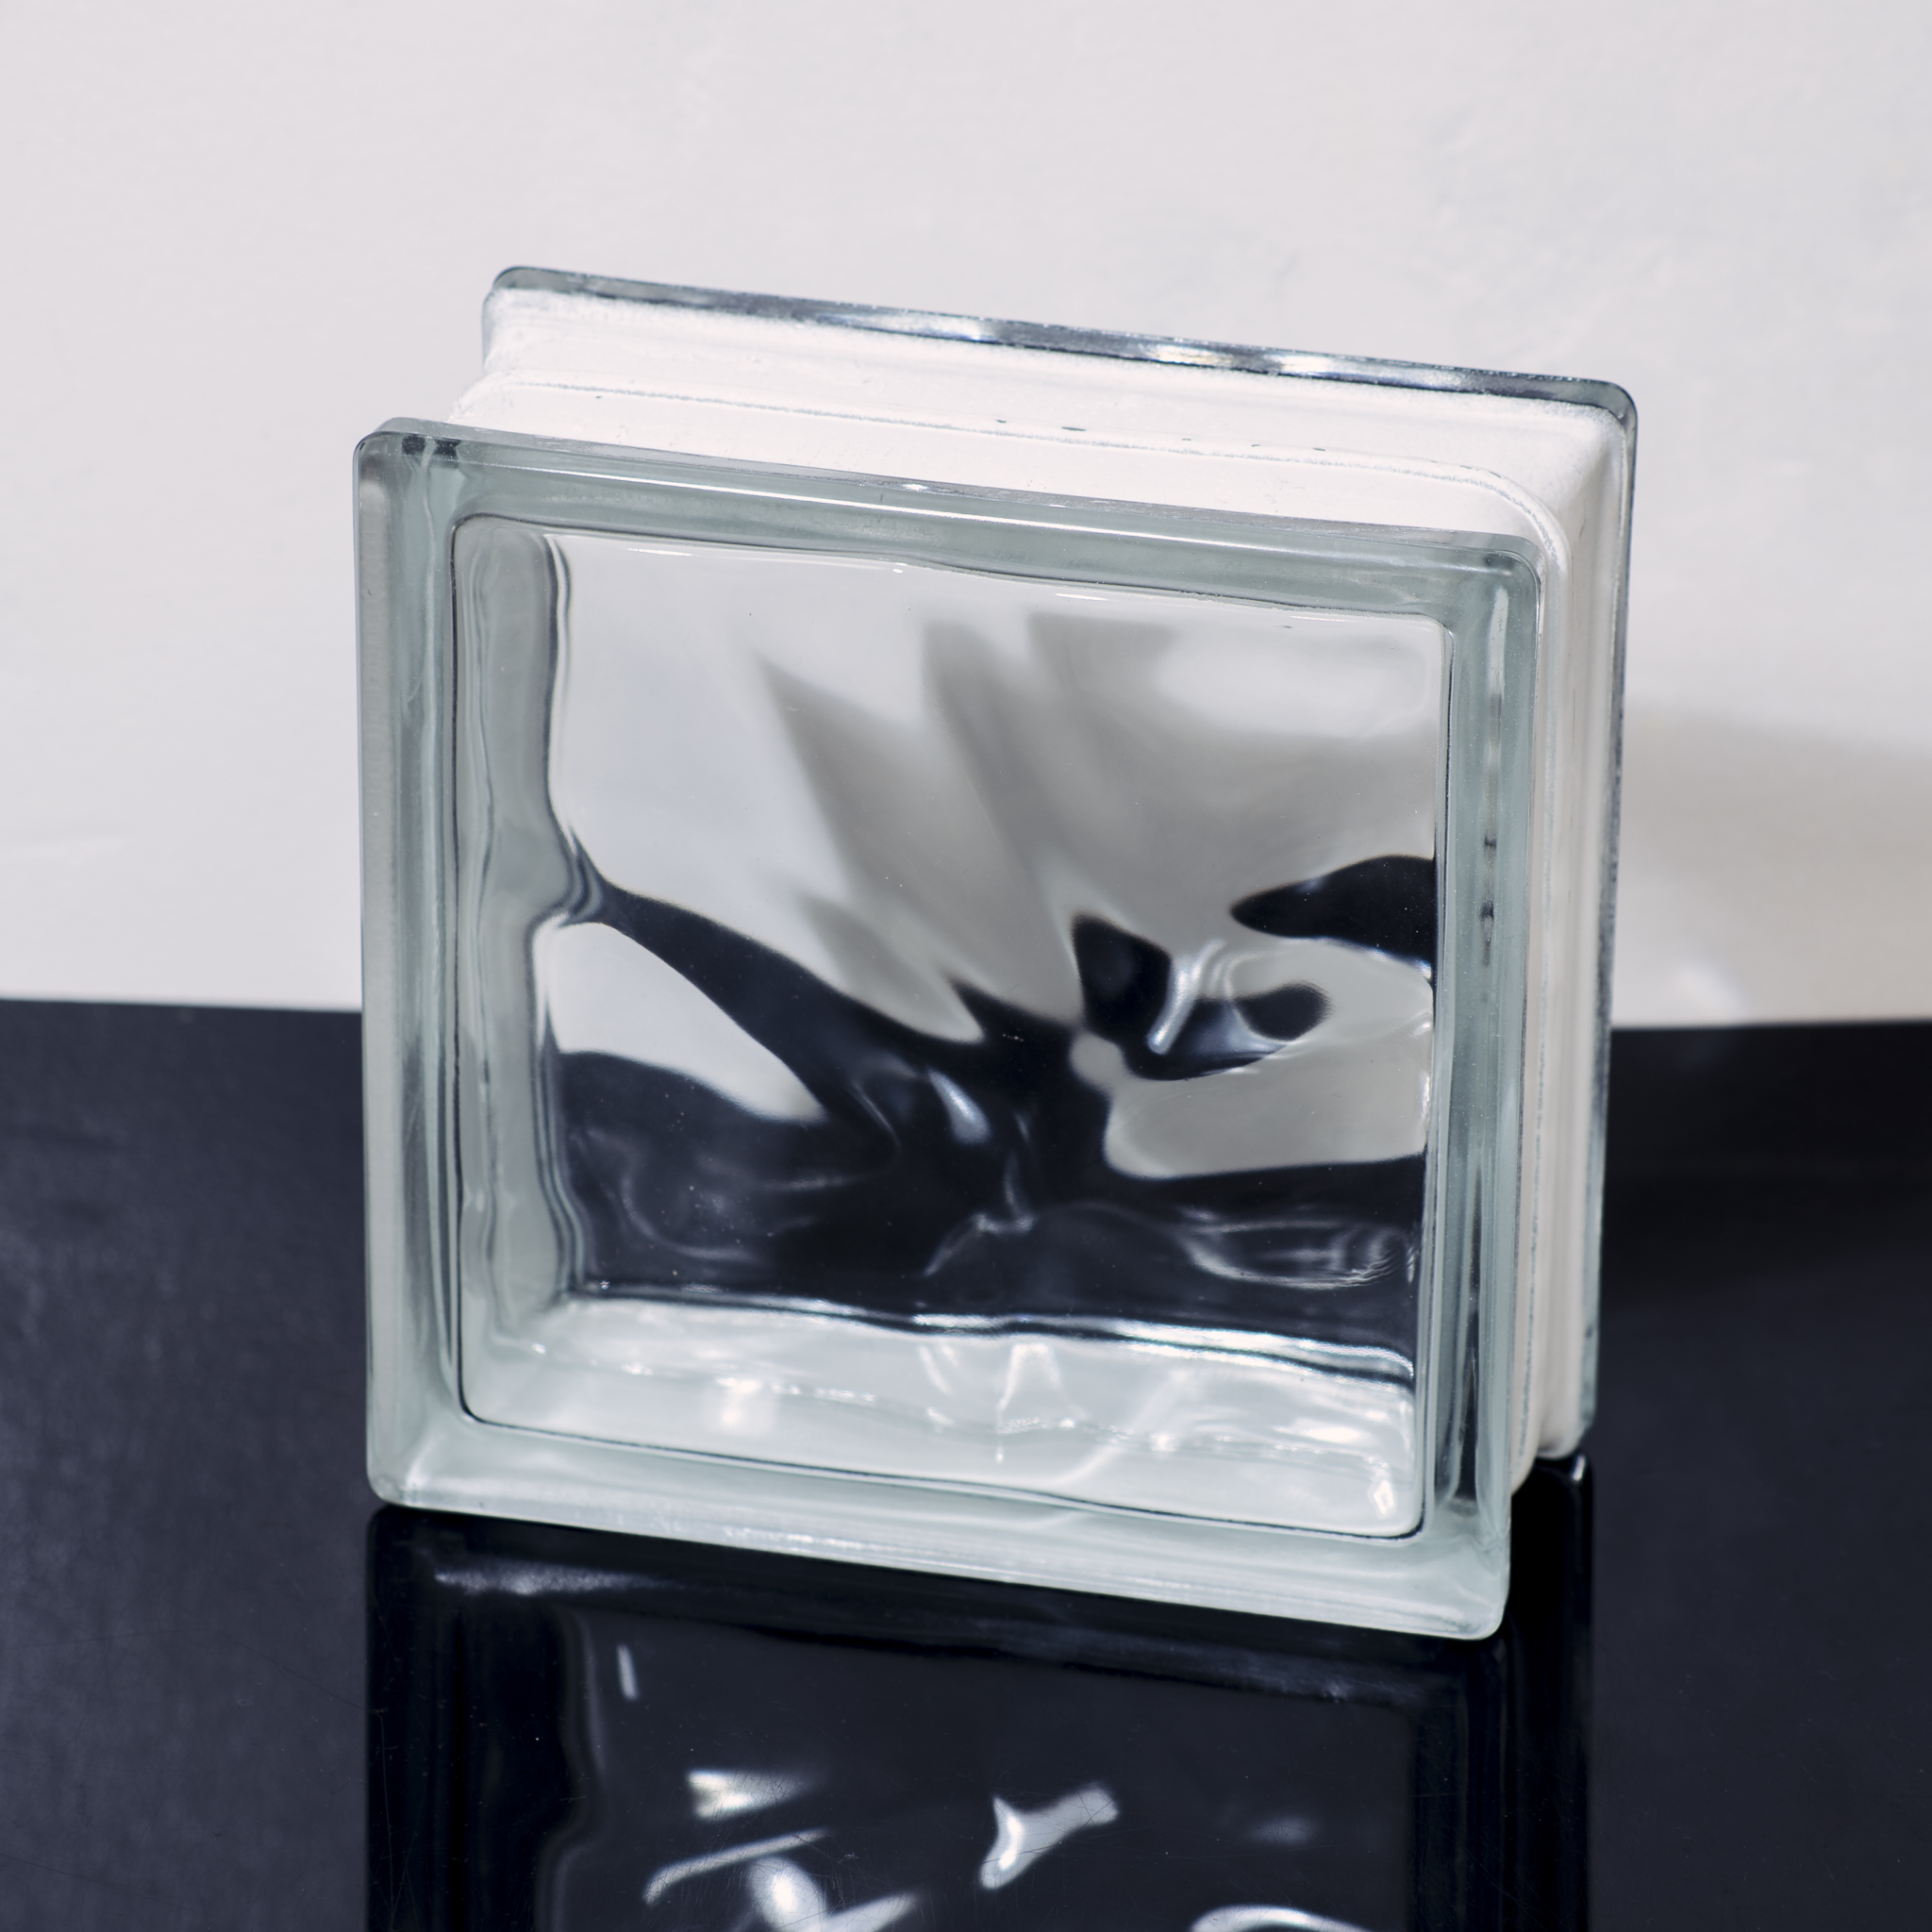 Glass blocks - You can get as many of these as you need but individually they're 19x19cm in size and surprisingly heavy.